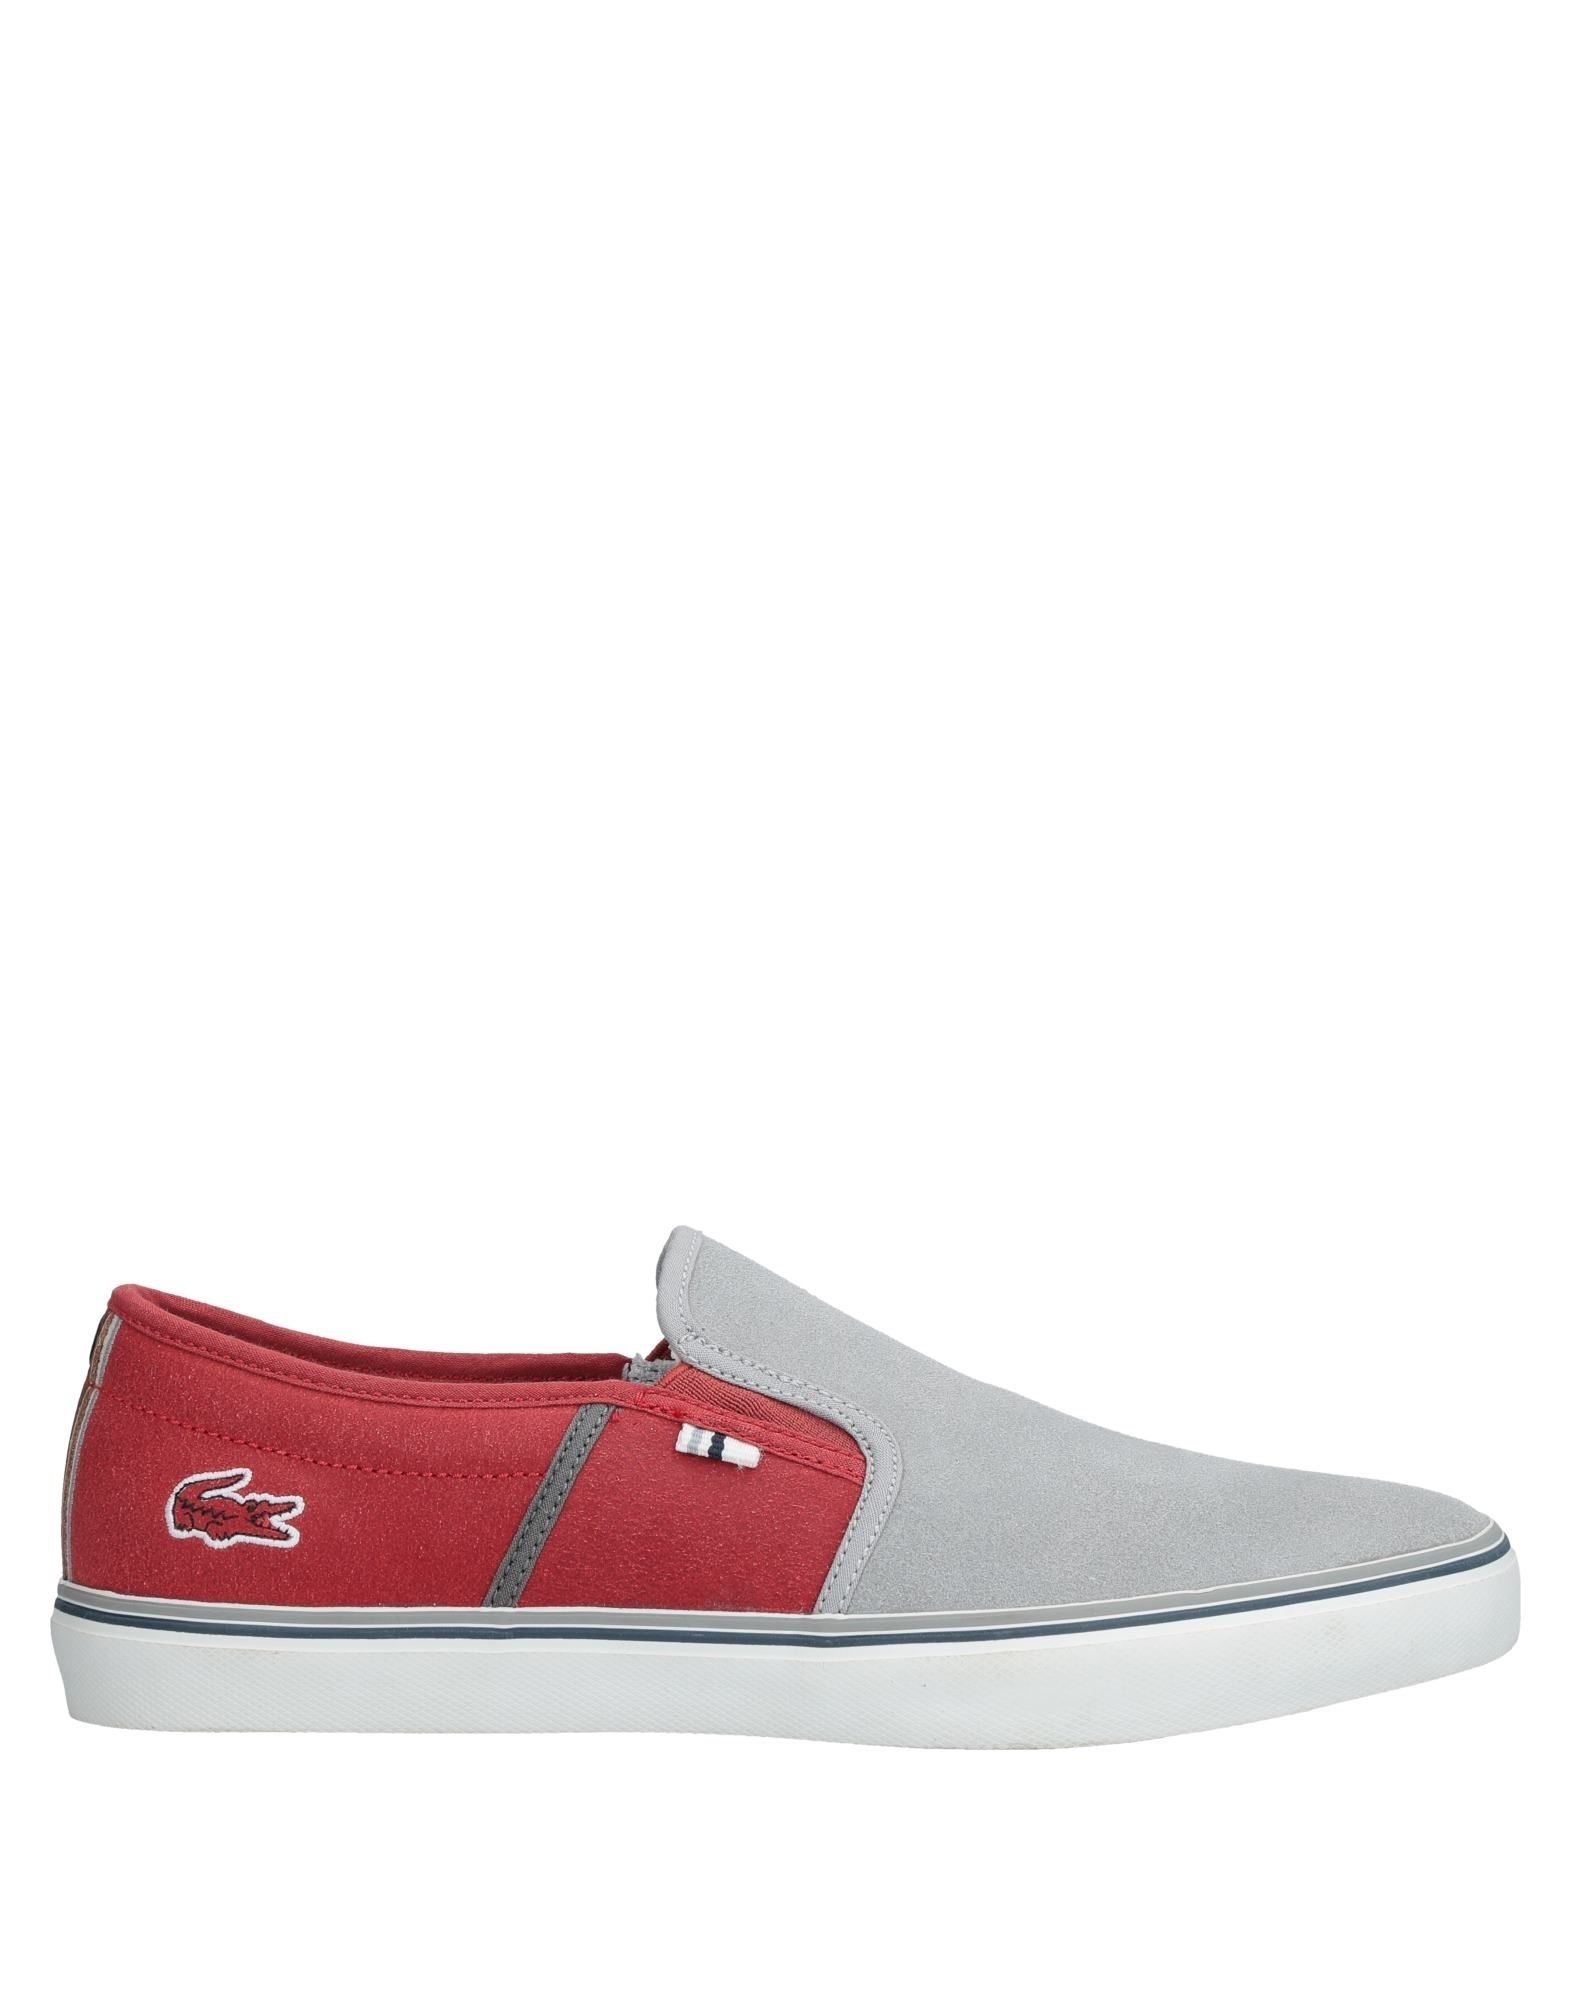 Lacoste Sneakers United - Men Lacoste Sneakers online on  United Sneakers Kingdom - 11543393QG 9a213f